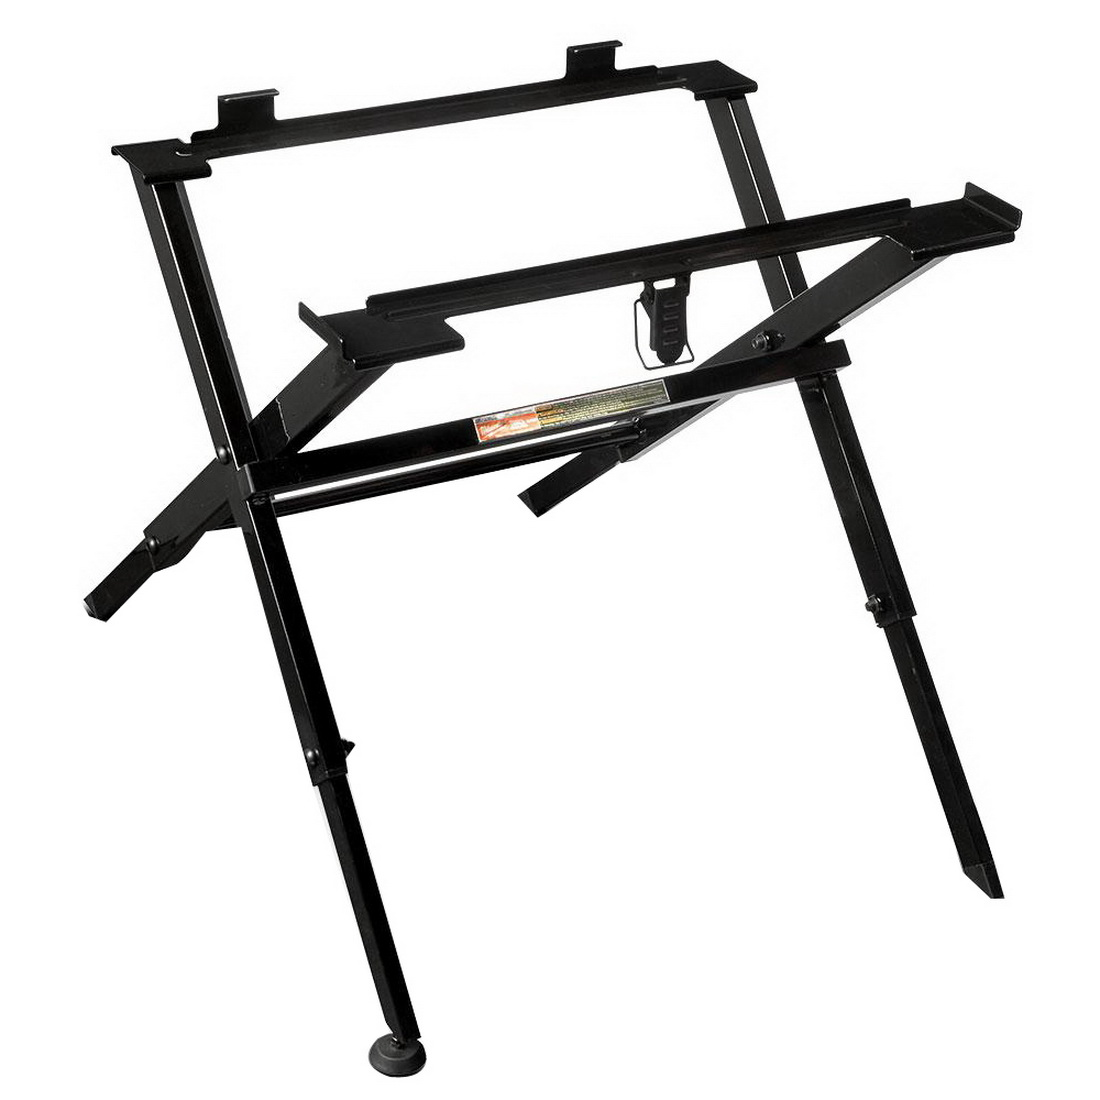 M18 FUEL Folding Table Saw Stand 450 x 584 x 520mm